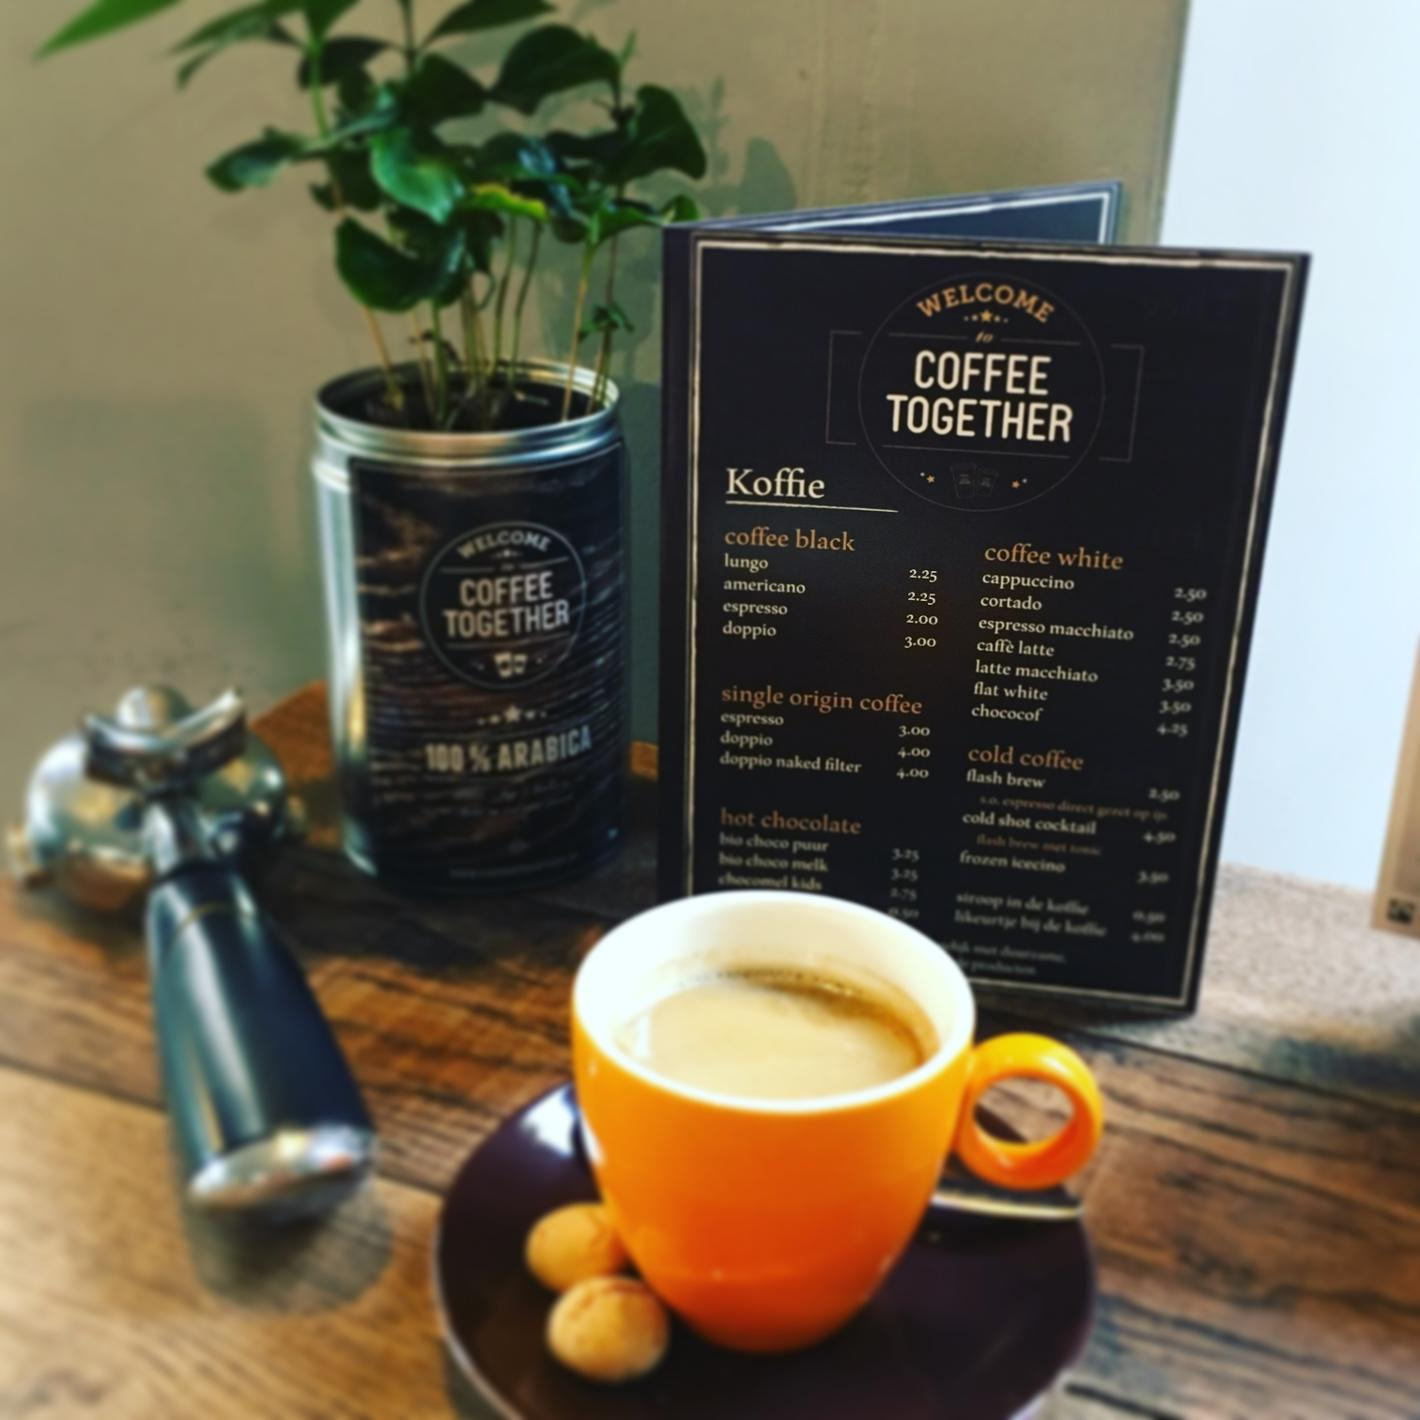 Foto Coffee Together in Deventer, Eten & drinken, Koffie, thee & gebak, Lunchen - #6